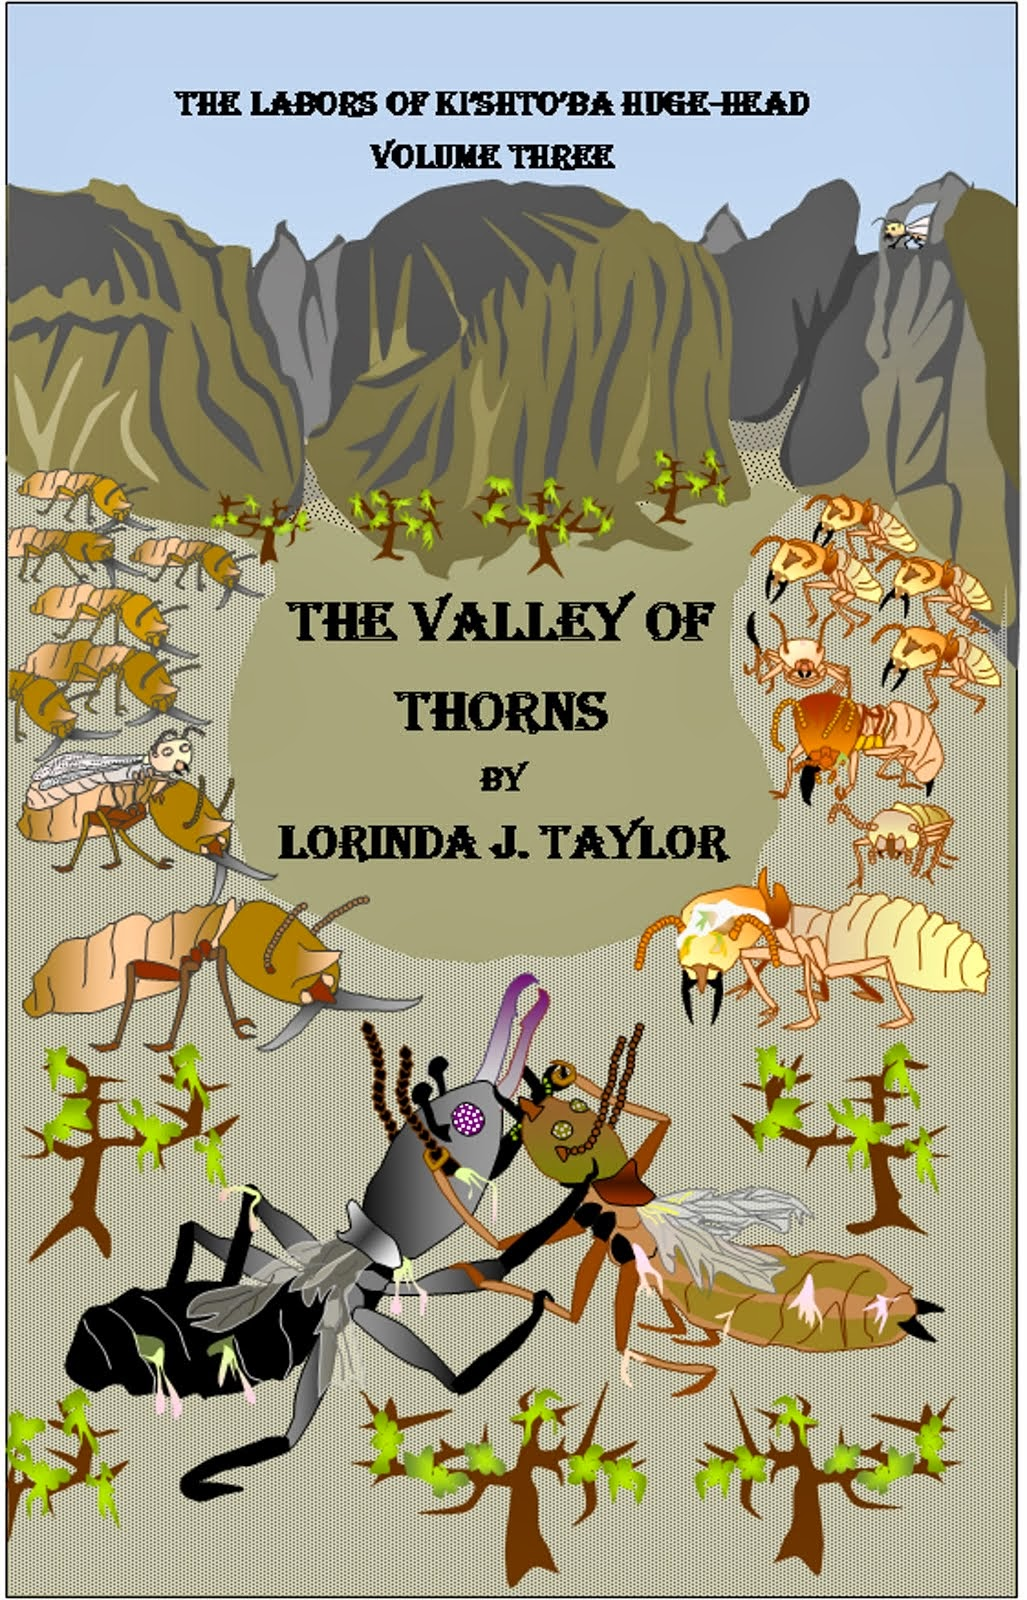 THE LABORS OF KI'SHTO'BA HUGE-HEAD, v.3, THE VALLEY OF THORNS